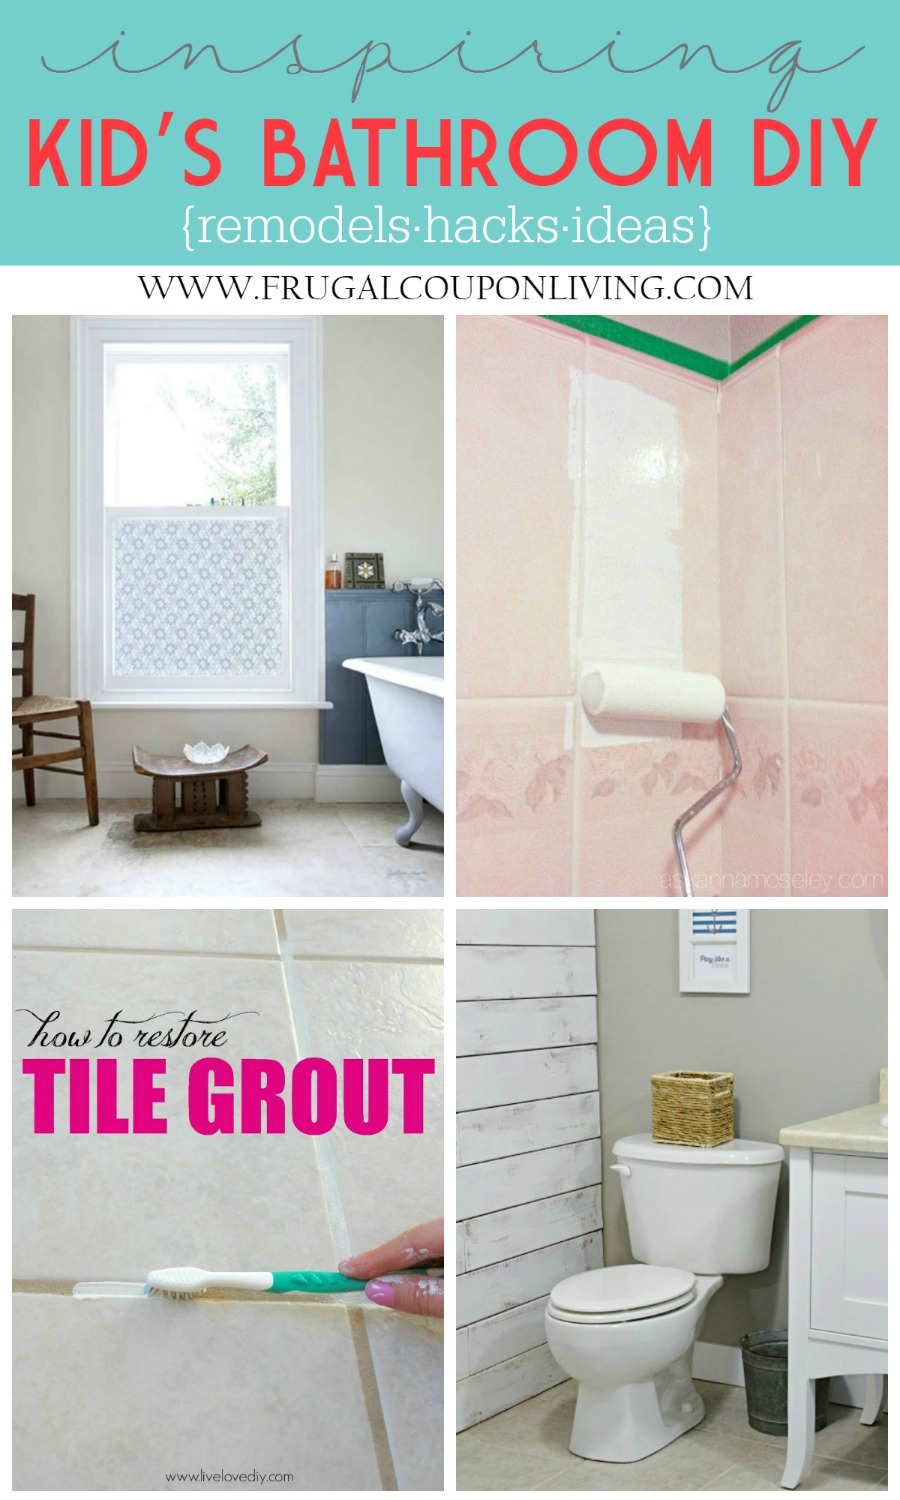 Inspiring Kids Bathrooms, Remodels and Hacks